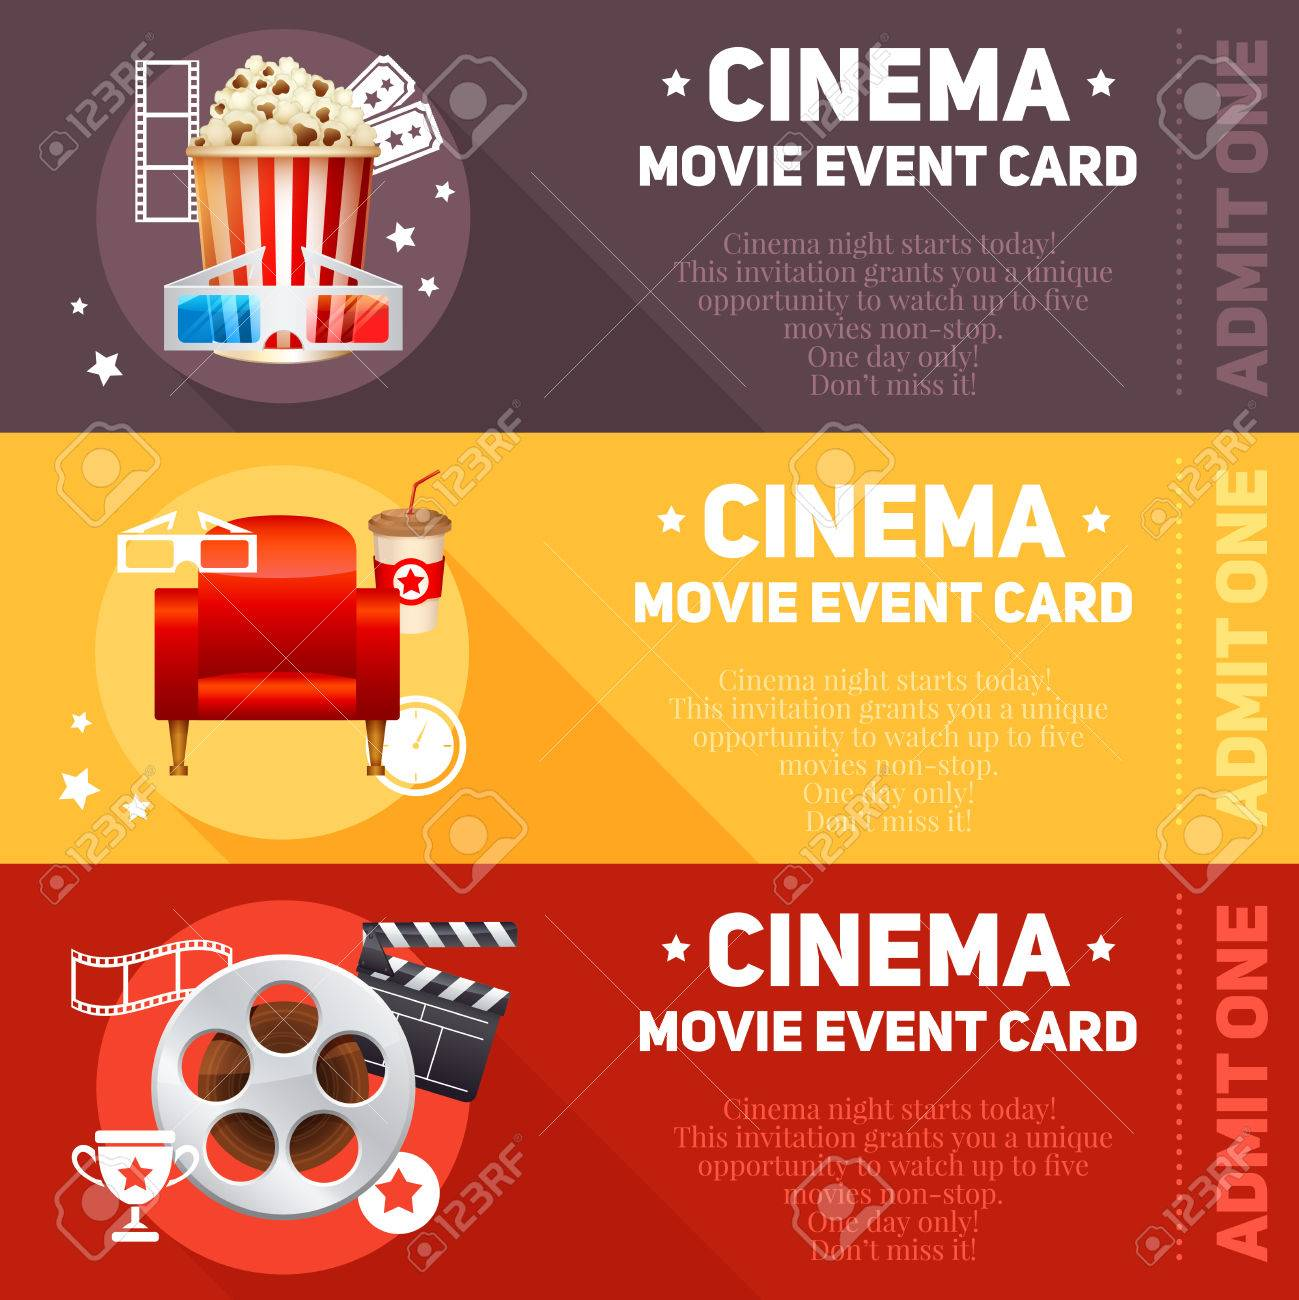 Realistic cinema movie poster template with film reel clapper popcorn 3D glasses conceptbanners with bokeh - 41599903